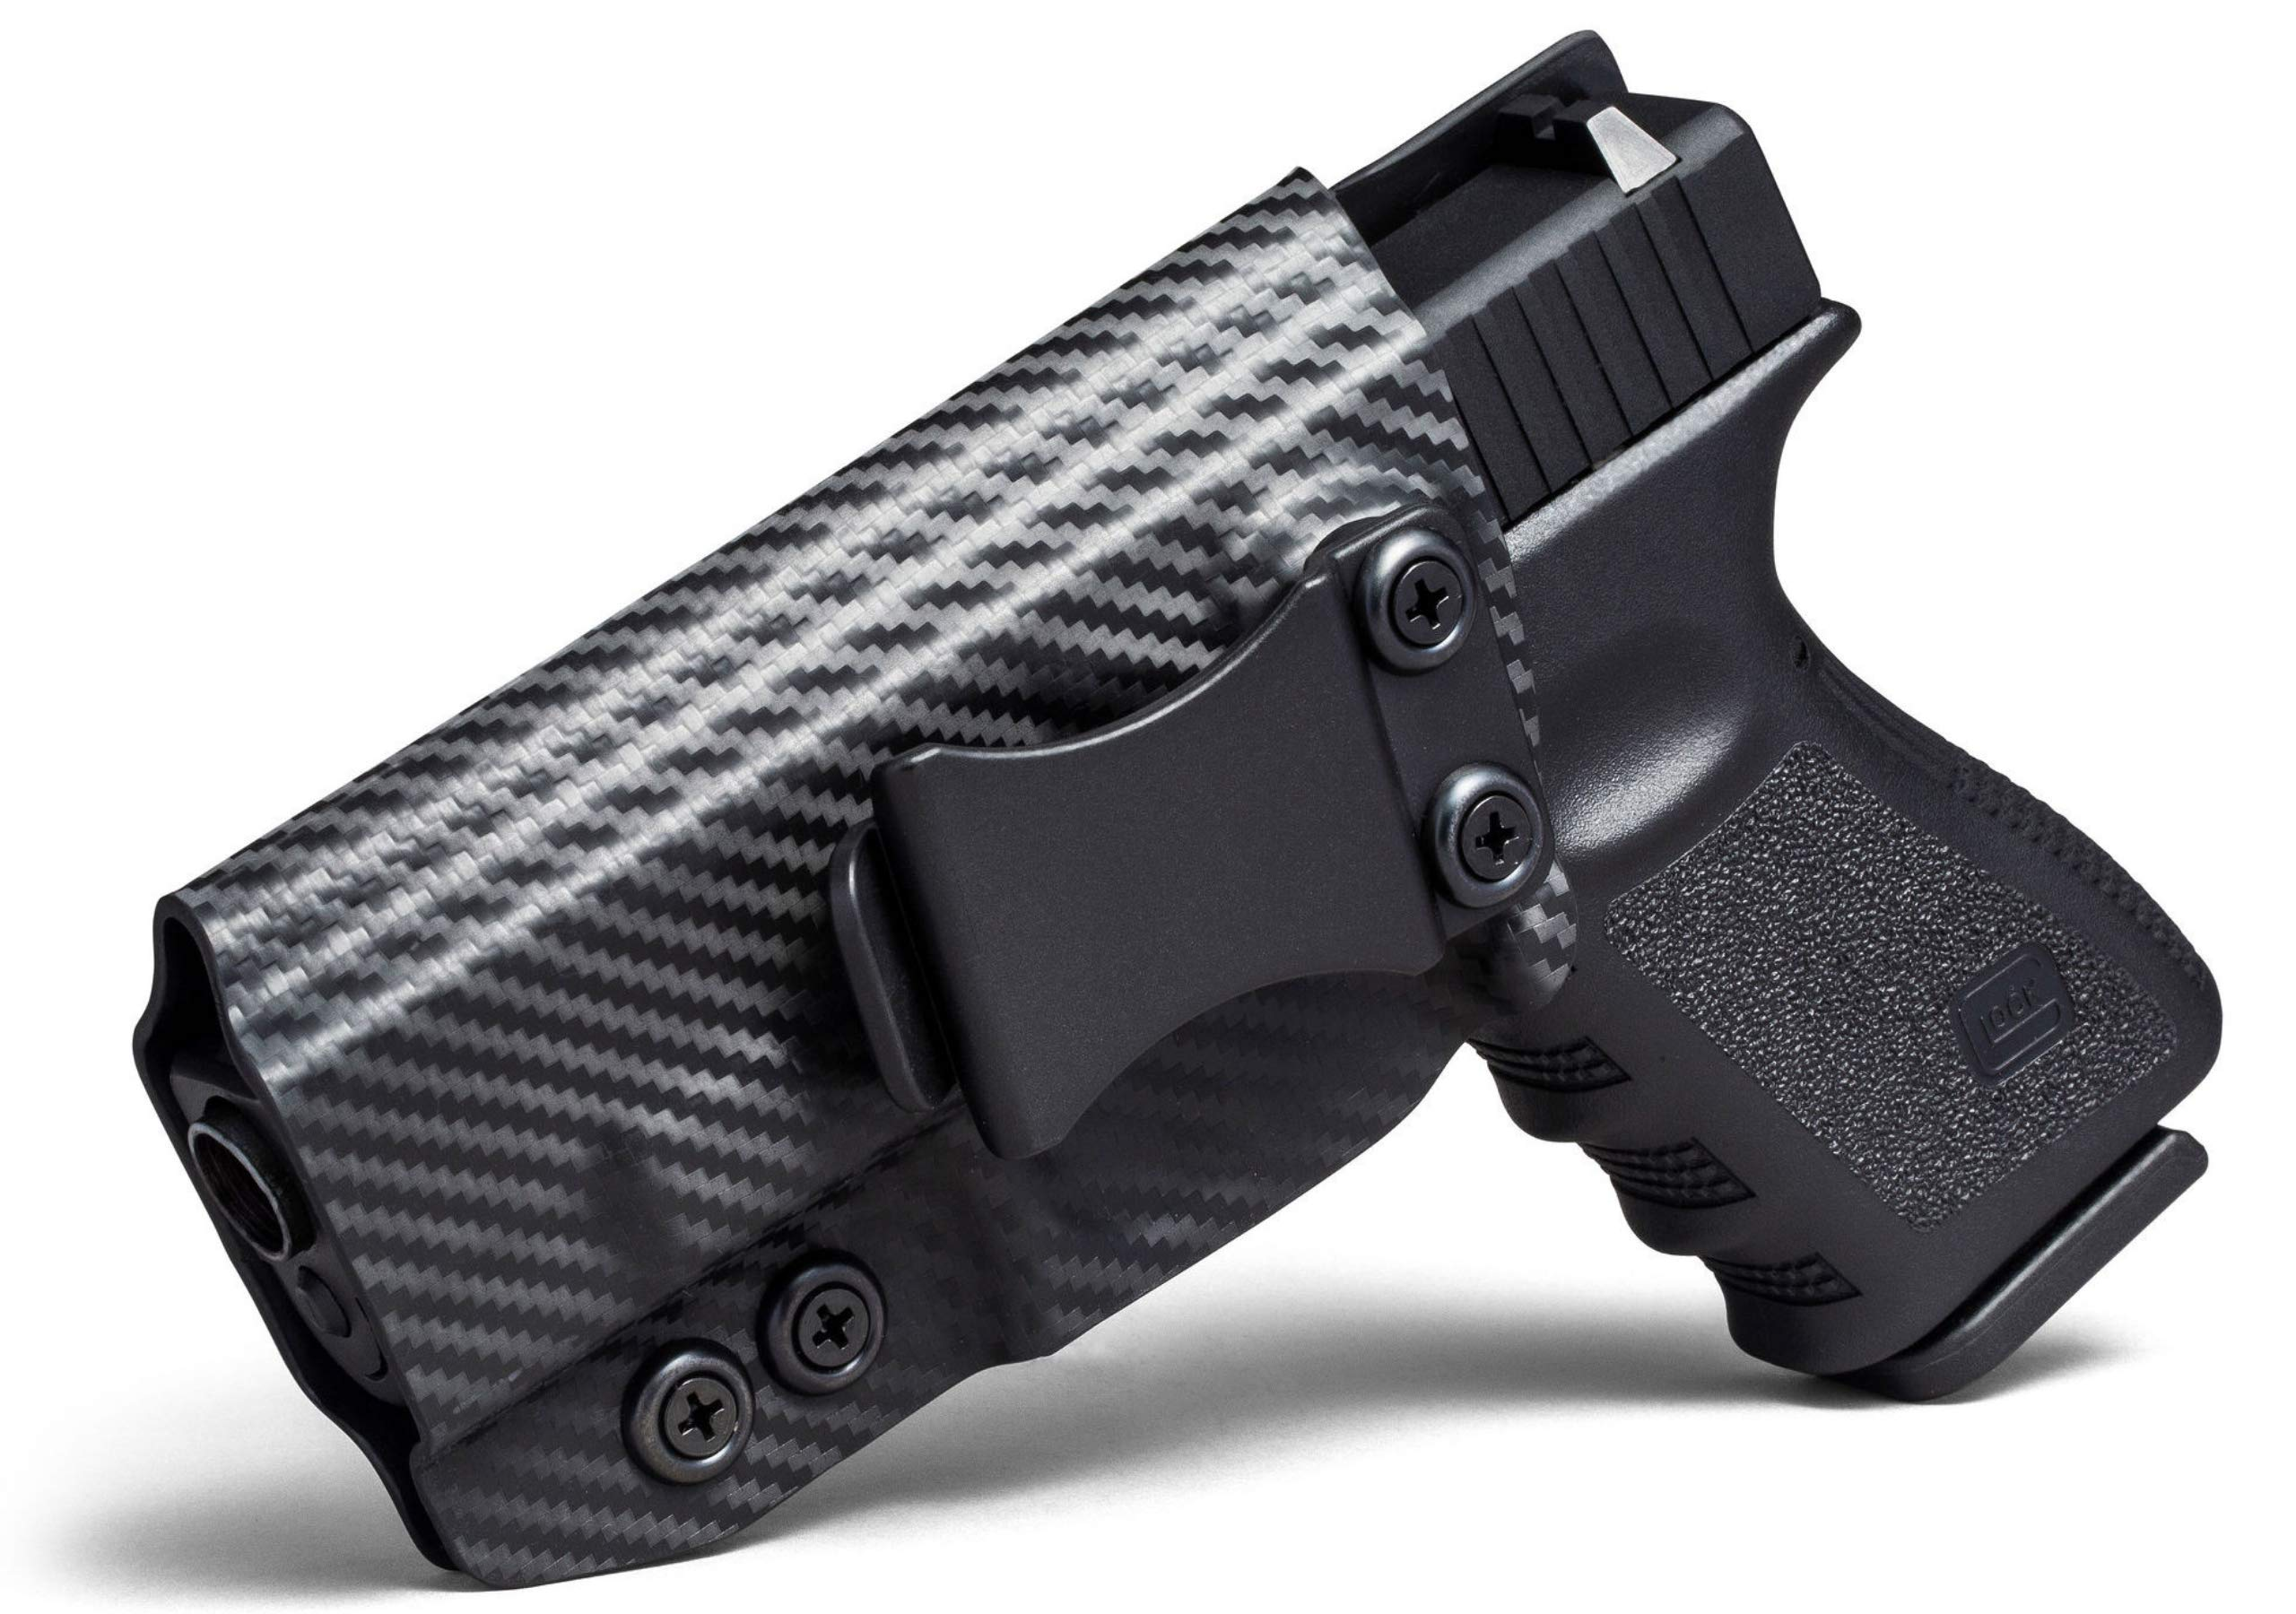 Concealment Express IWB KYDEX Holster: fits Jericho 941 PL9 Full Size Polymer Frame - Inside Waistband Concealed Carry - Adj. Cant/Retention - US Made - Claw Compatible by Concealment Express